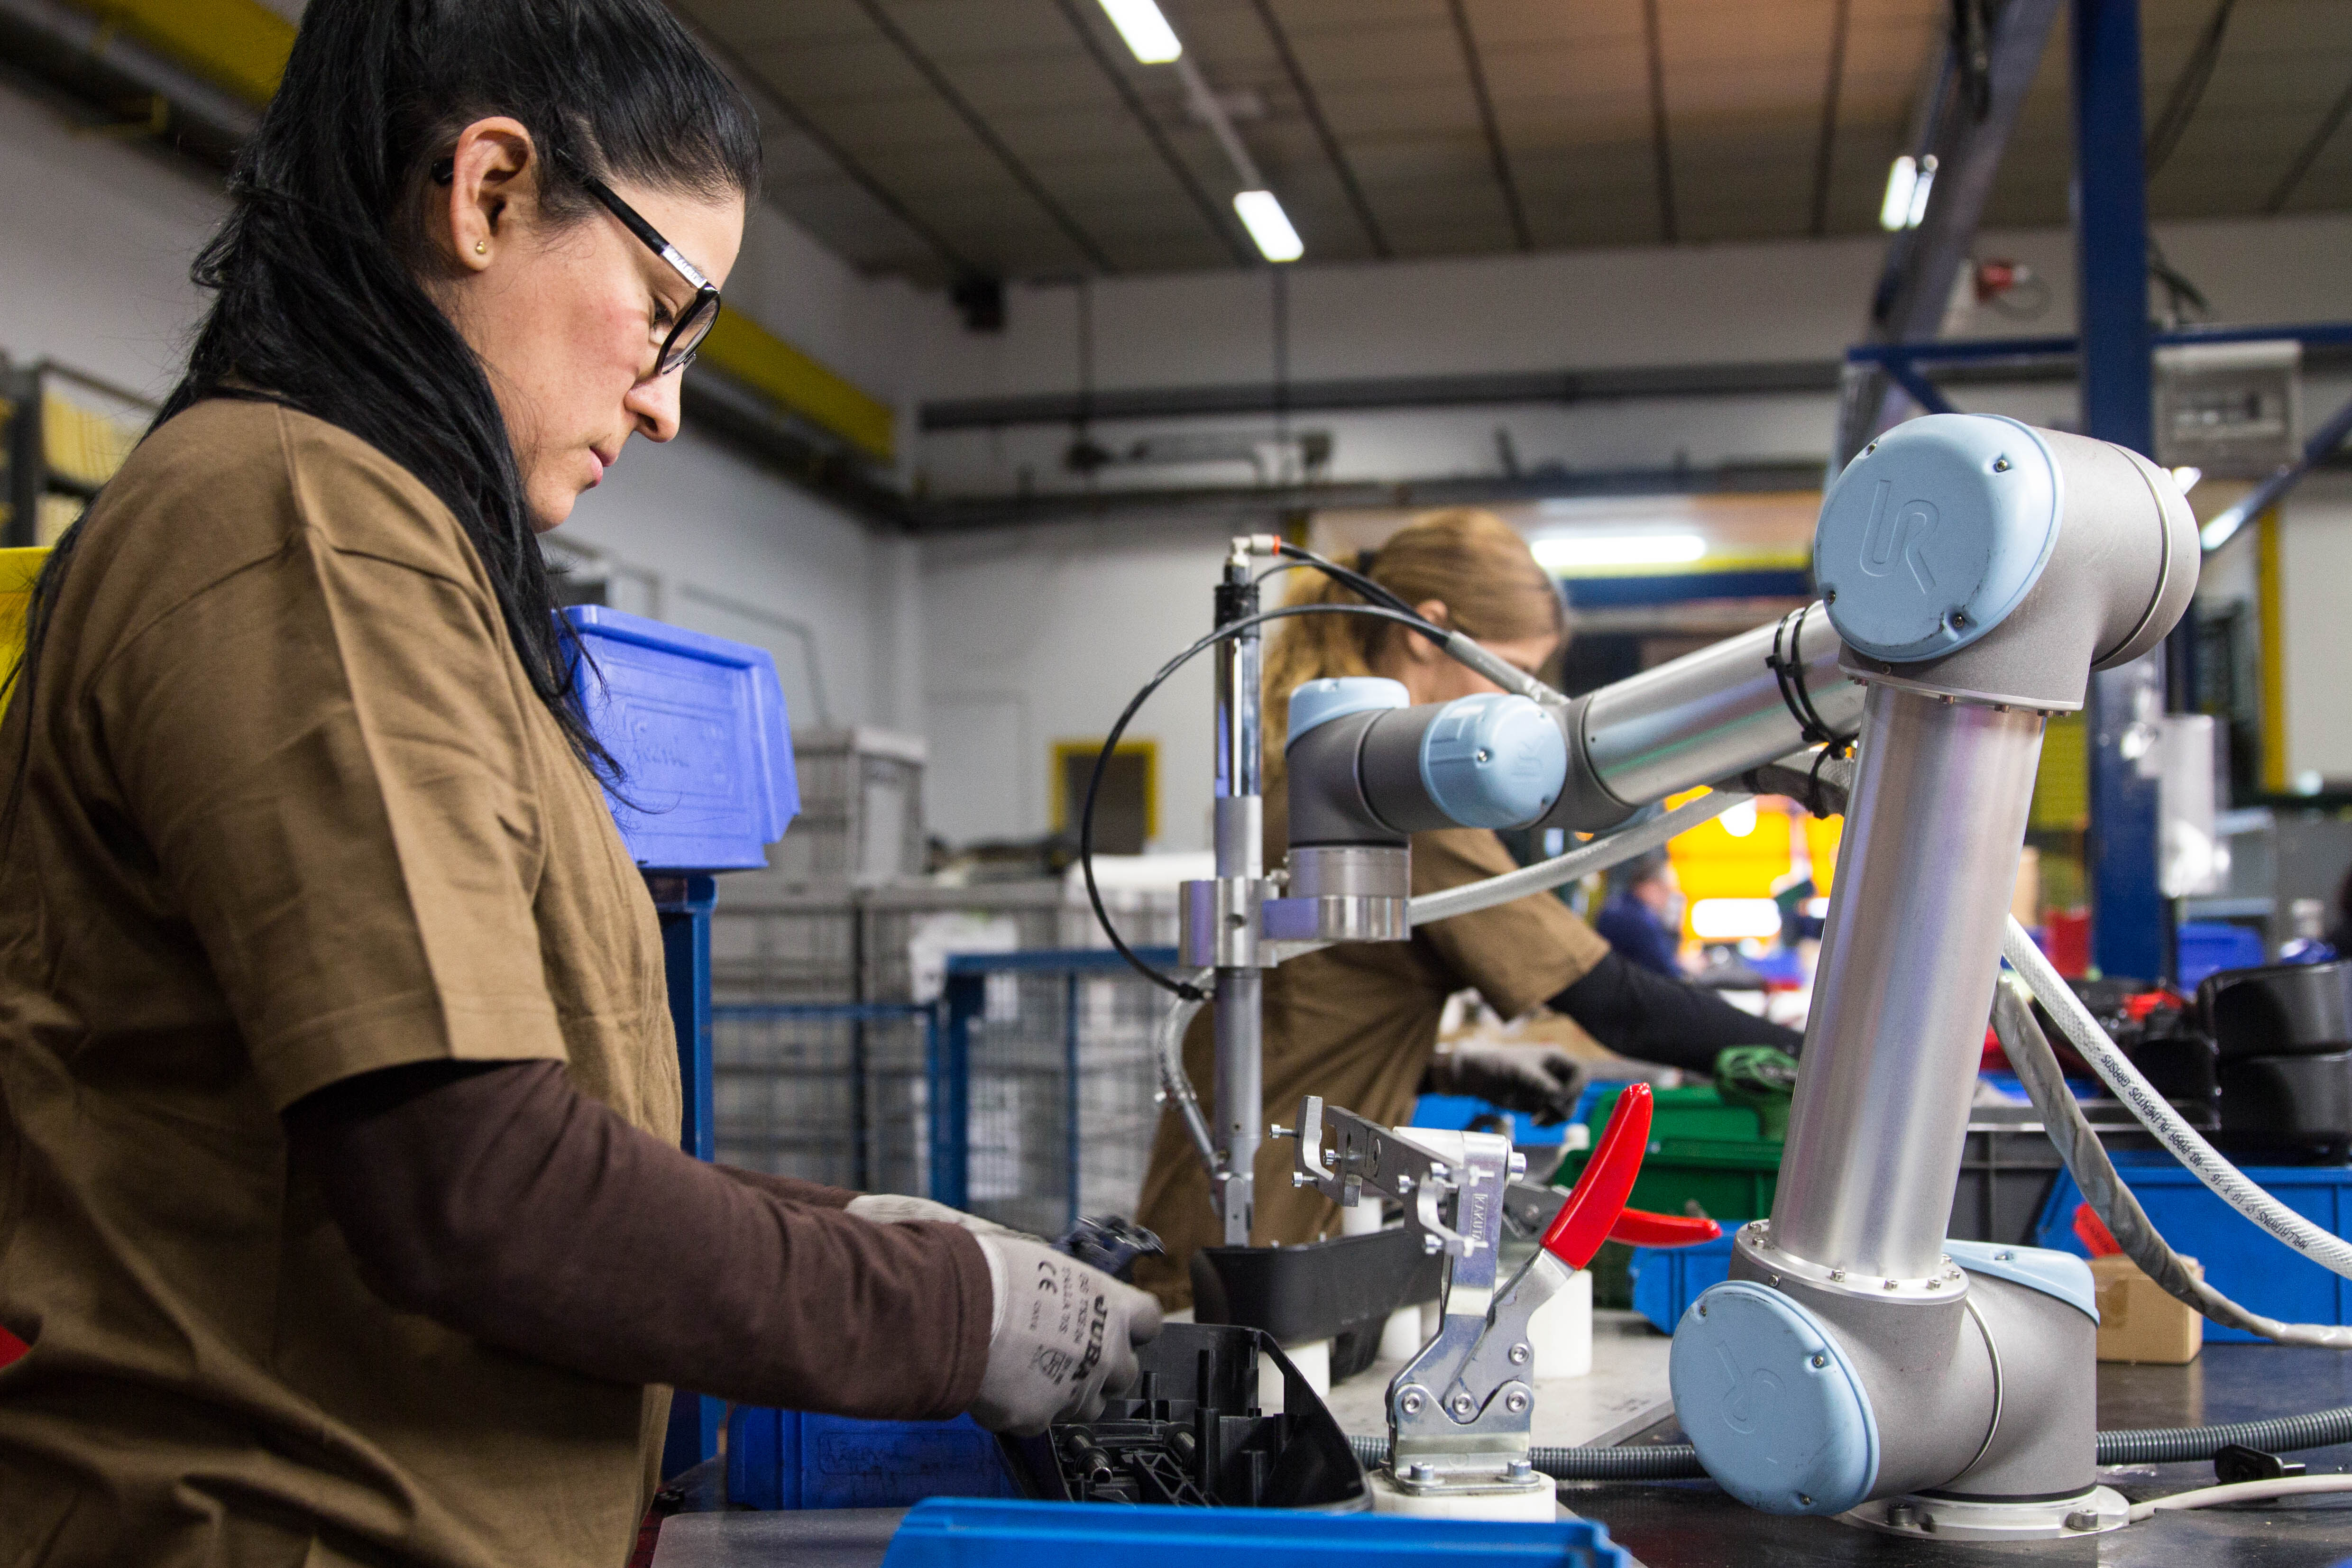 Rapid Growth of Cobots in APAC Region